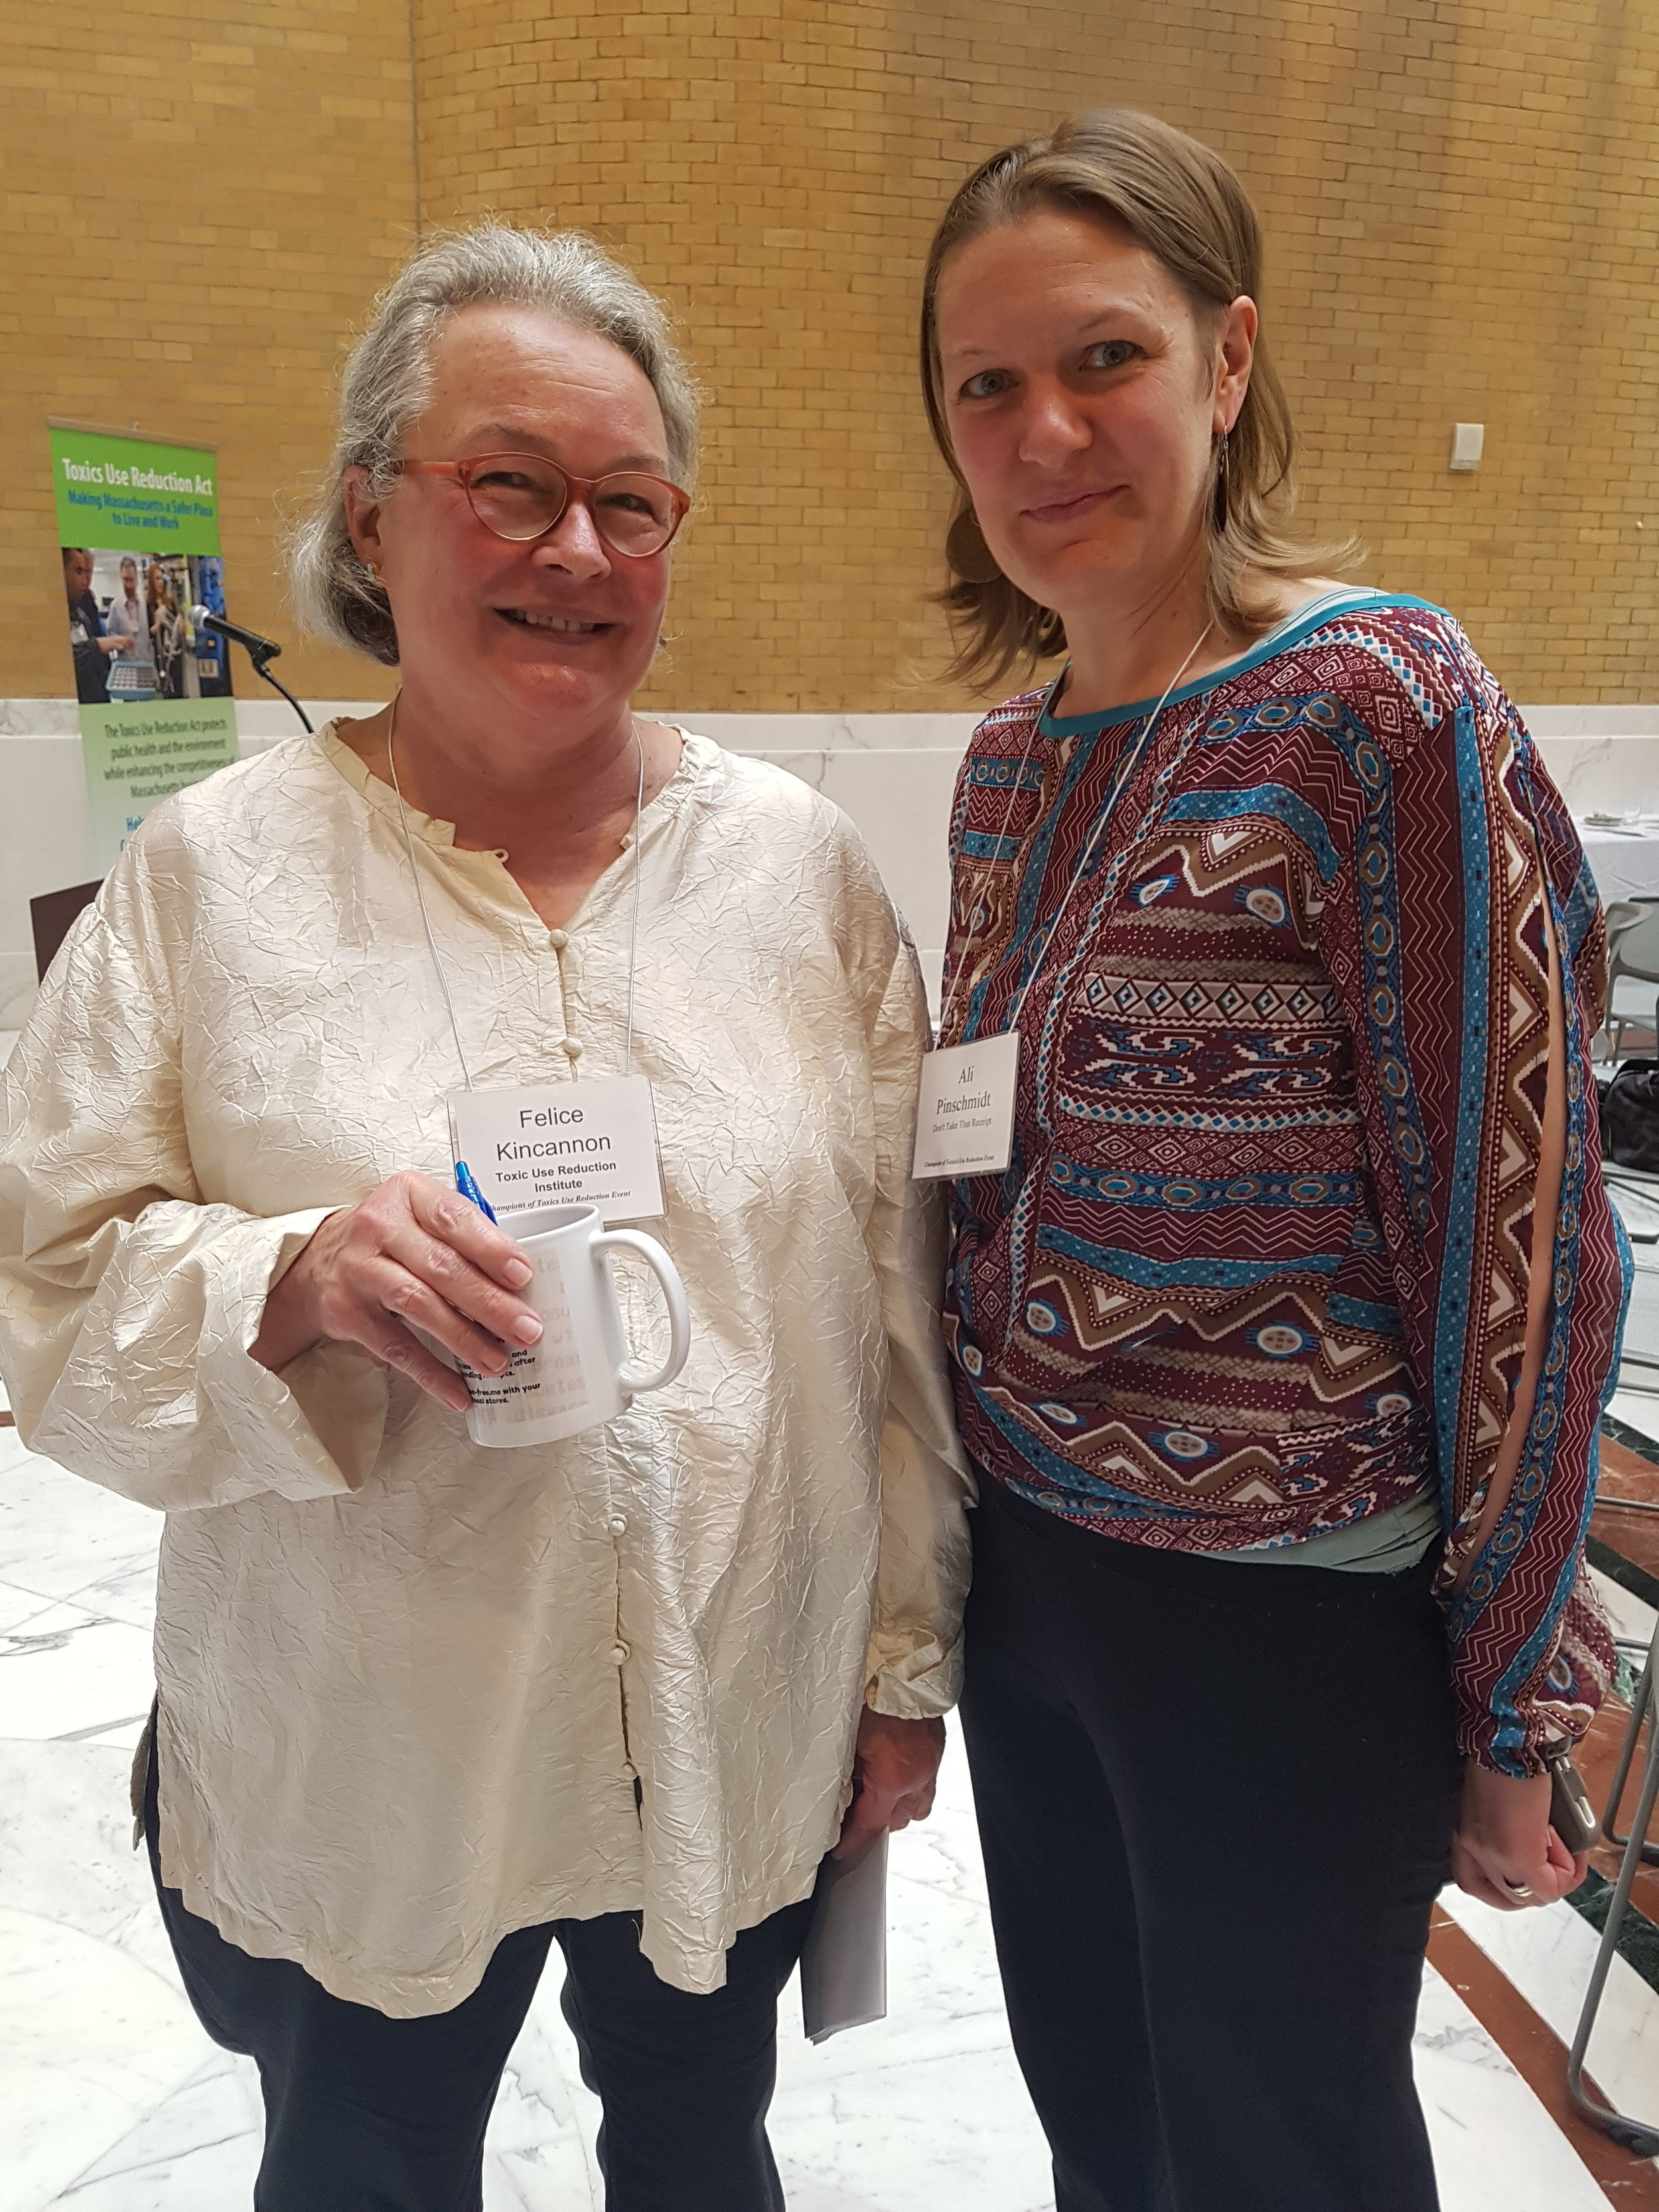 Don't Take That Receipt! Director Ali Pinschmidt with Communications and Community Manager Felice Kincannon of TURI - our wonderfully supportive funder!